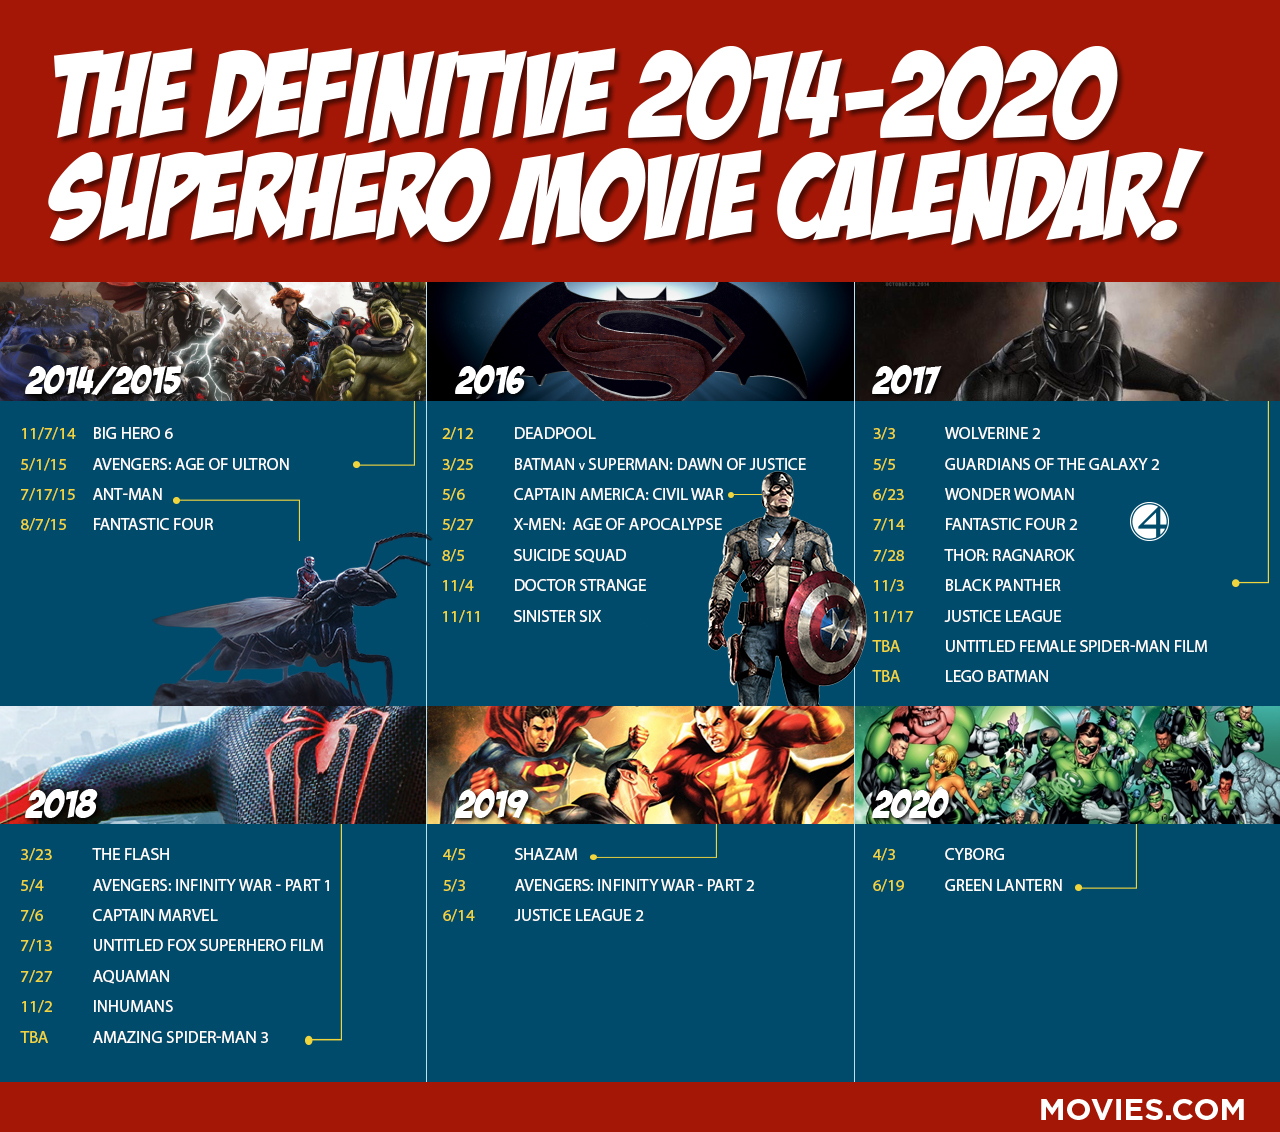 check out marvel's upcoming movie plans in one awesome image | fandango